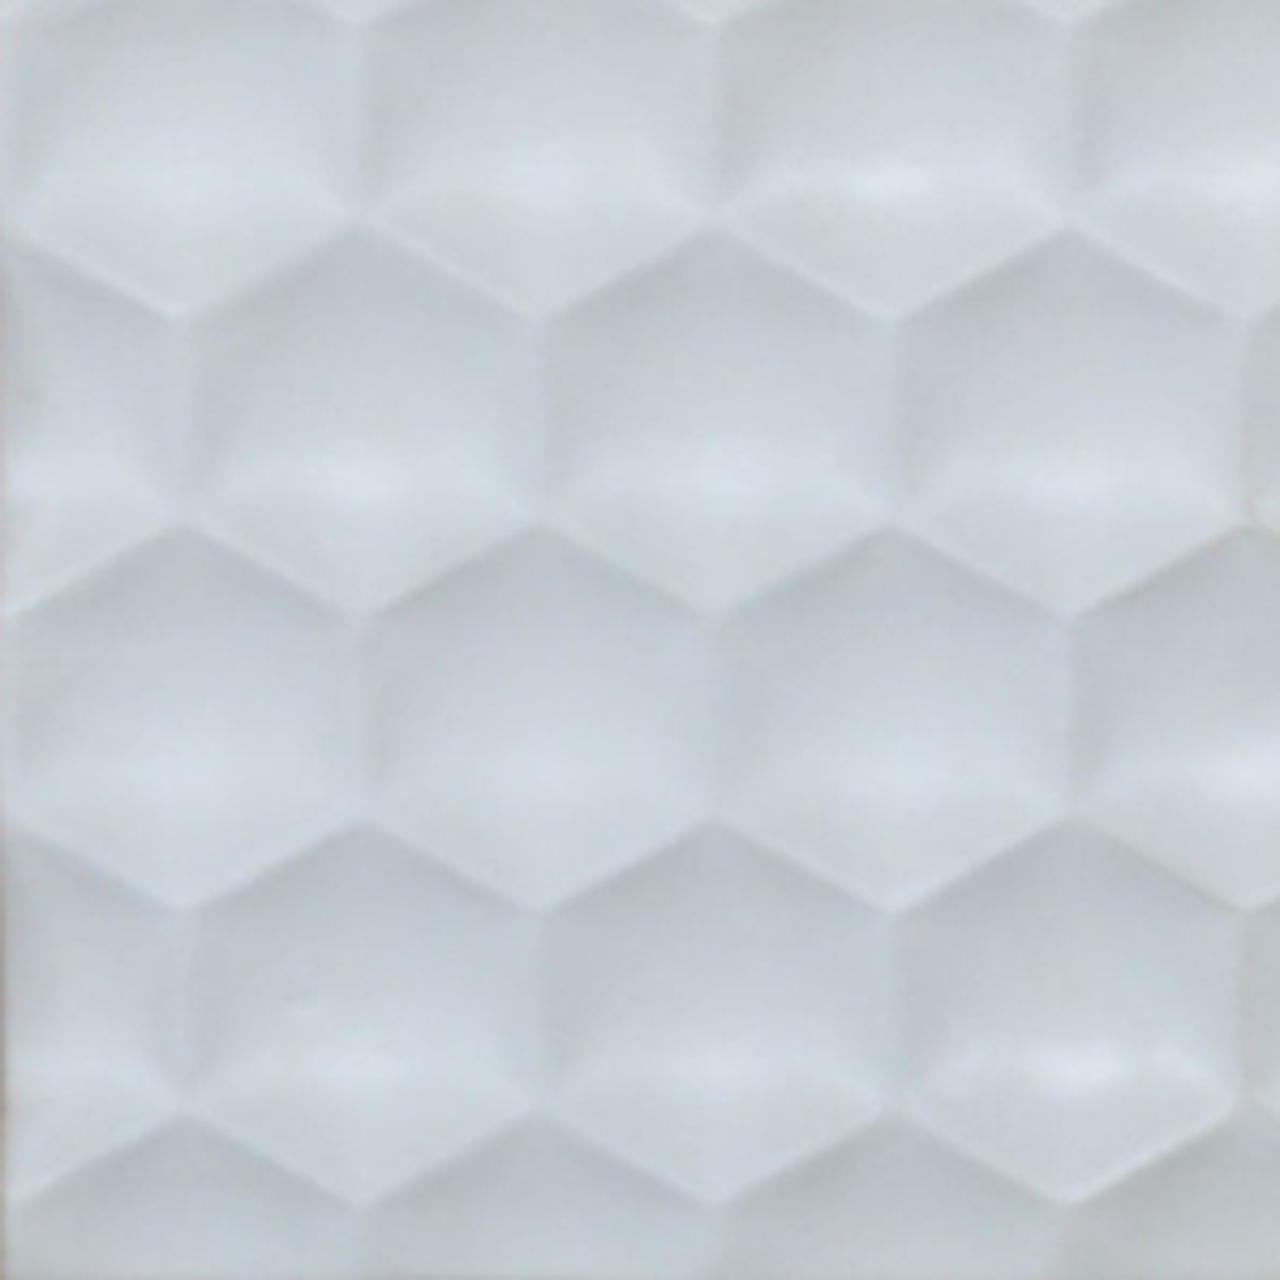 HEXAGONAL DEEP CARVING TILE